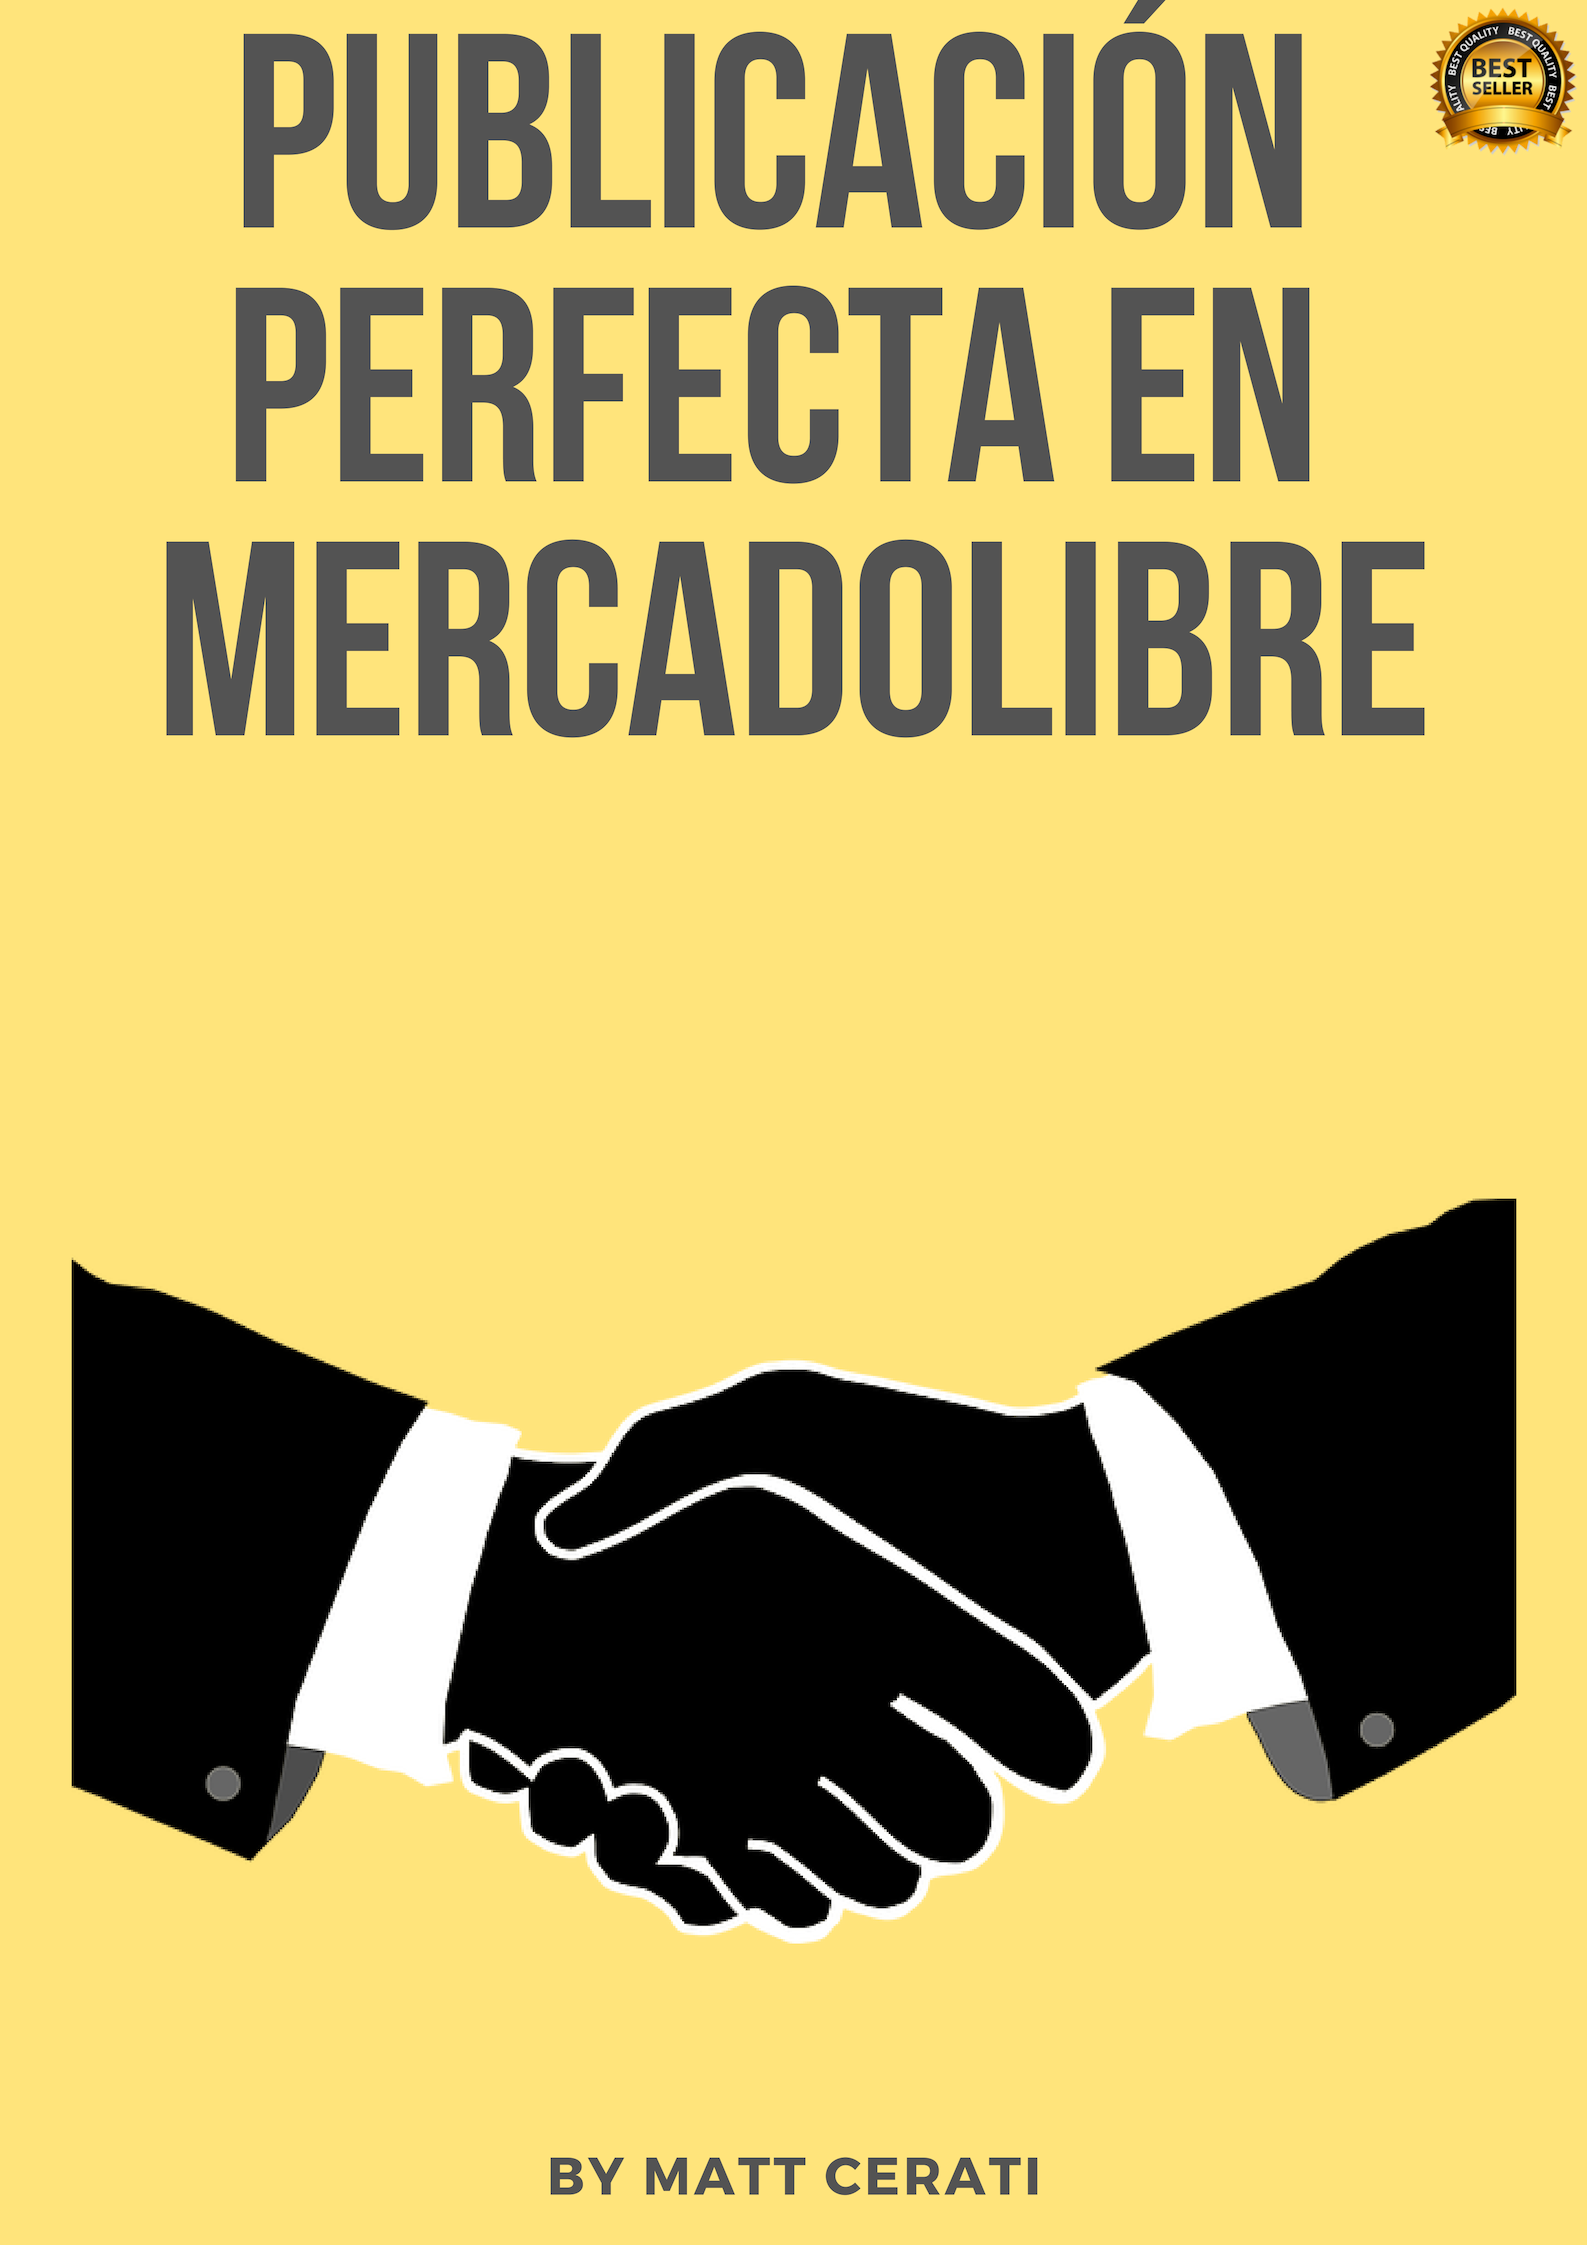 create the perfect publication in mercadolibre by Mat...